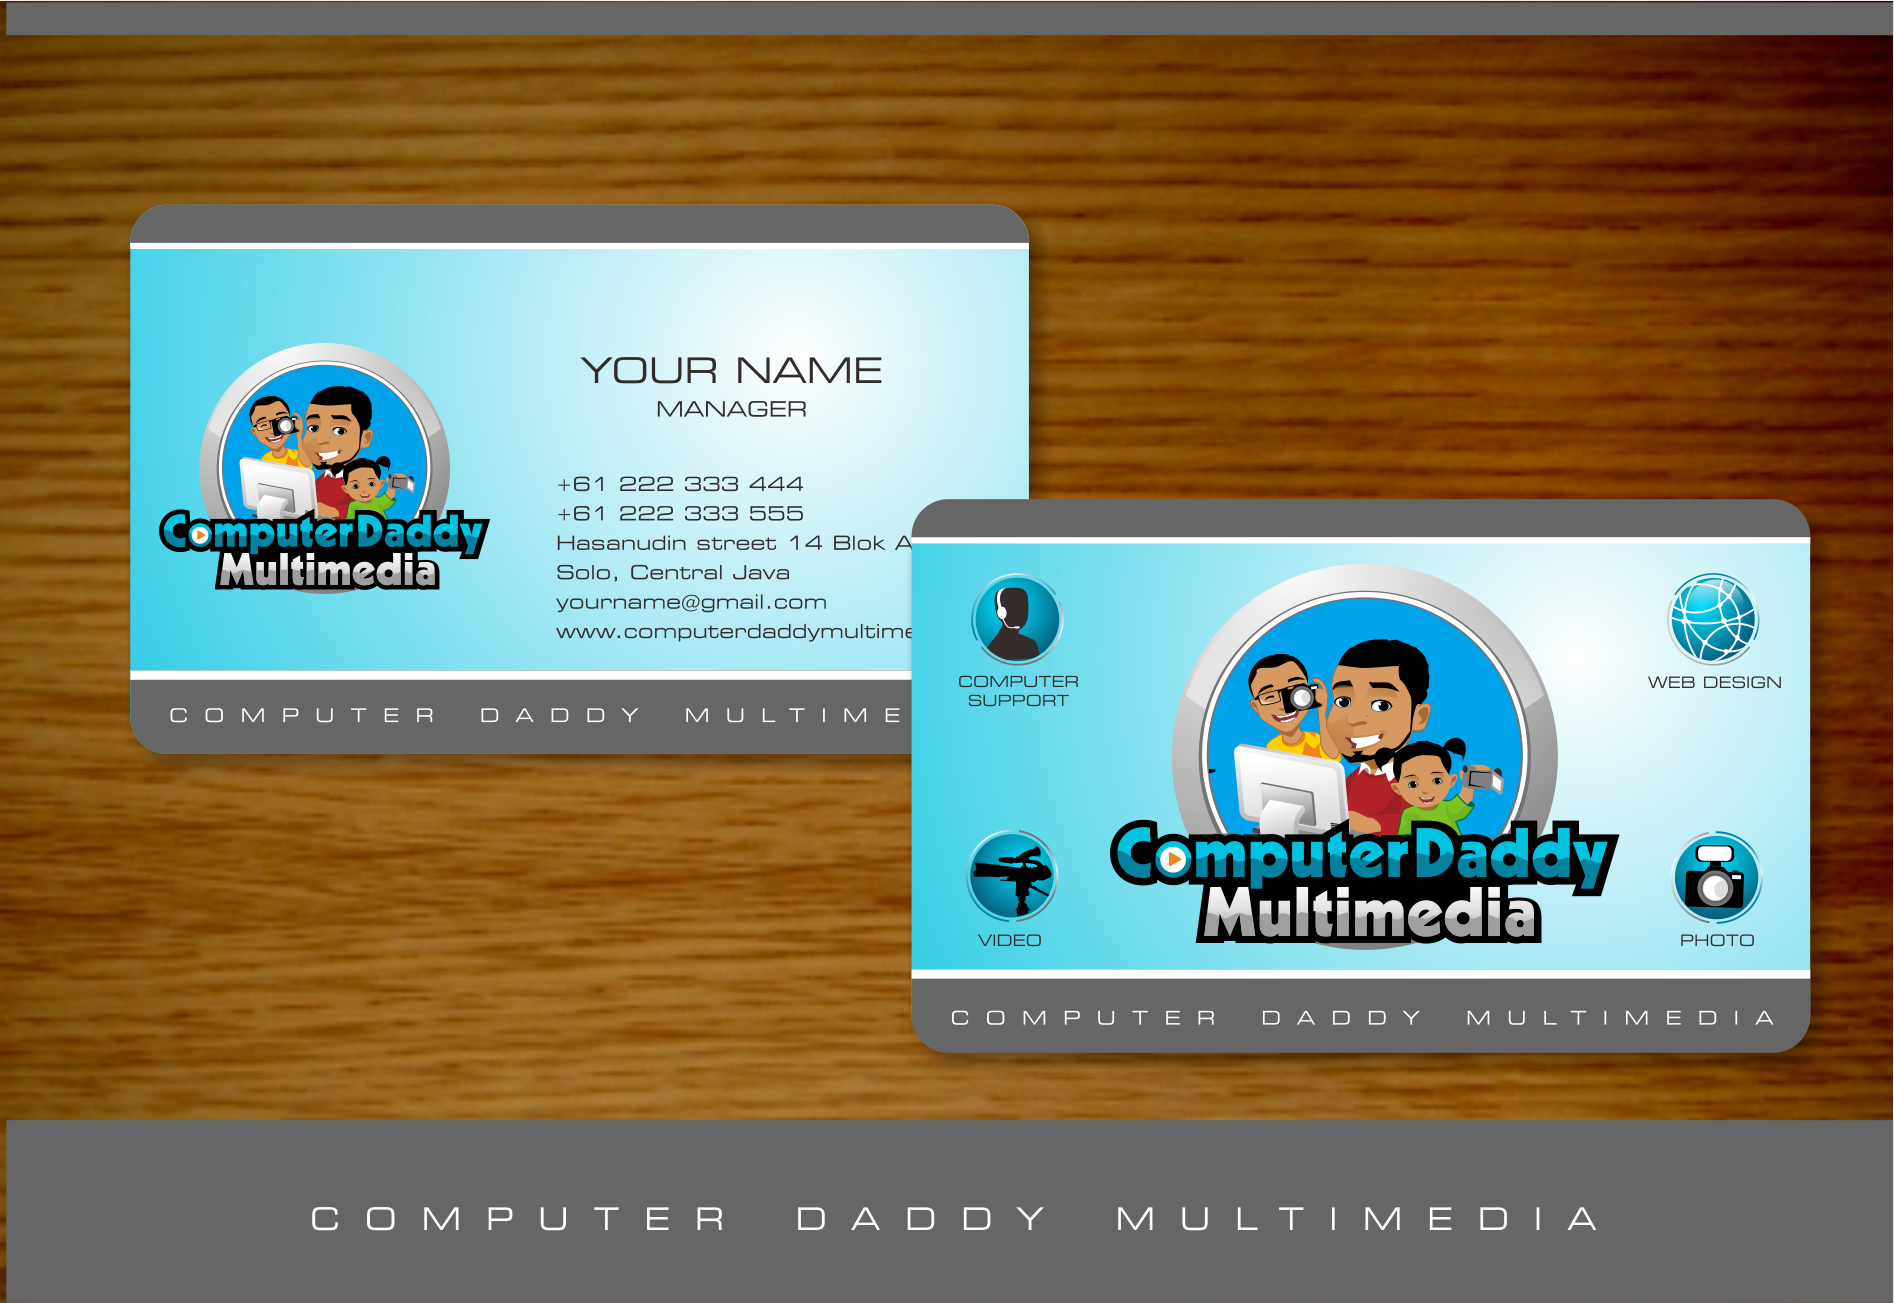 Illustrative logo wanted for Computer Daddy Multimedia [ideas and examples provided!]